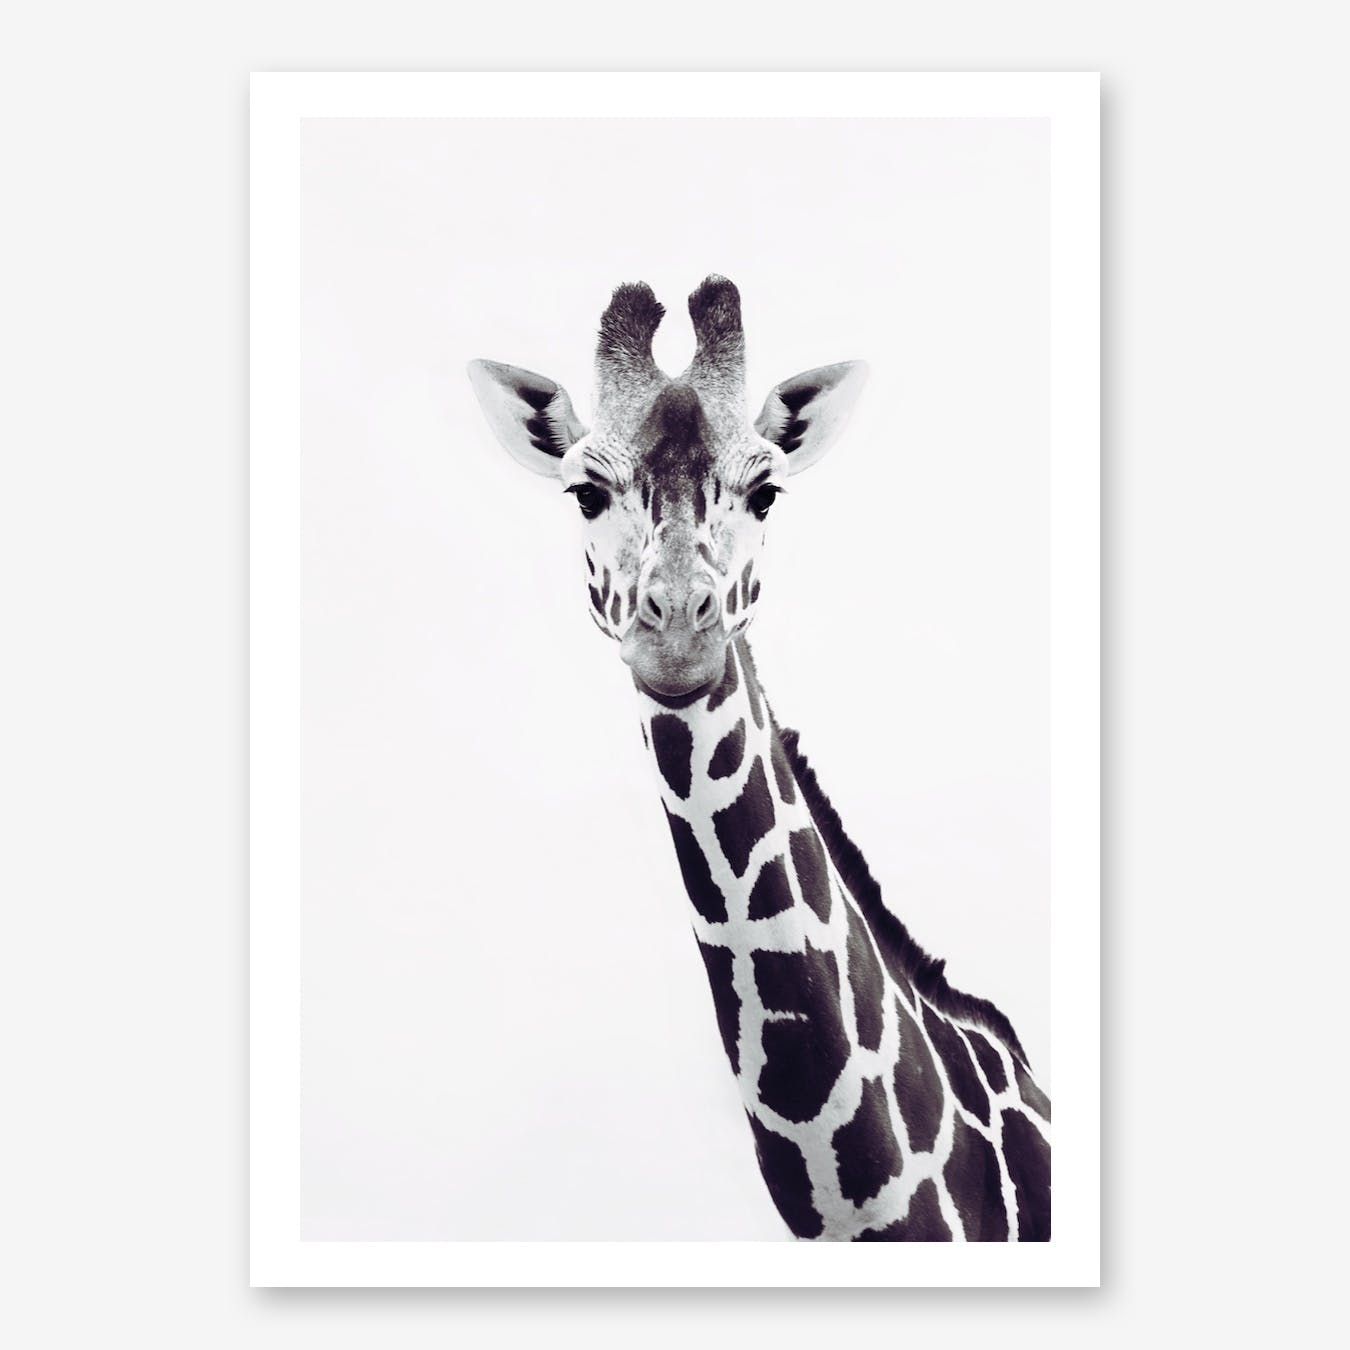 Giraffe Portrait in Print